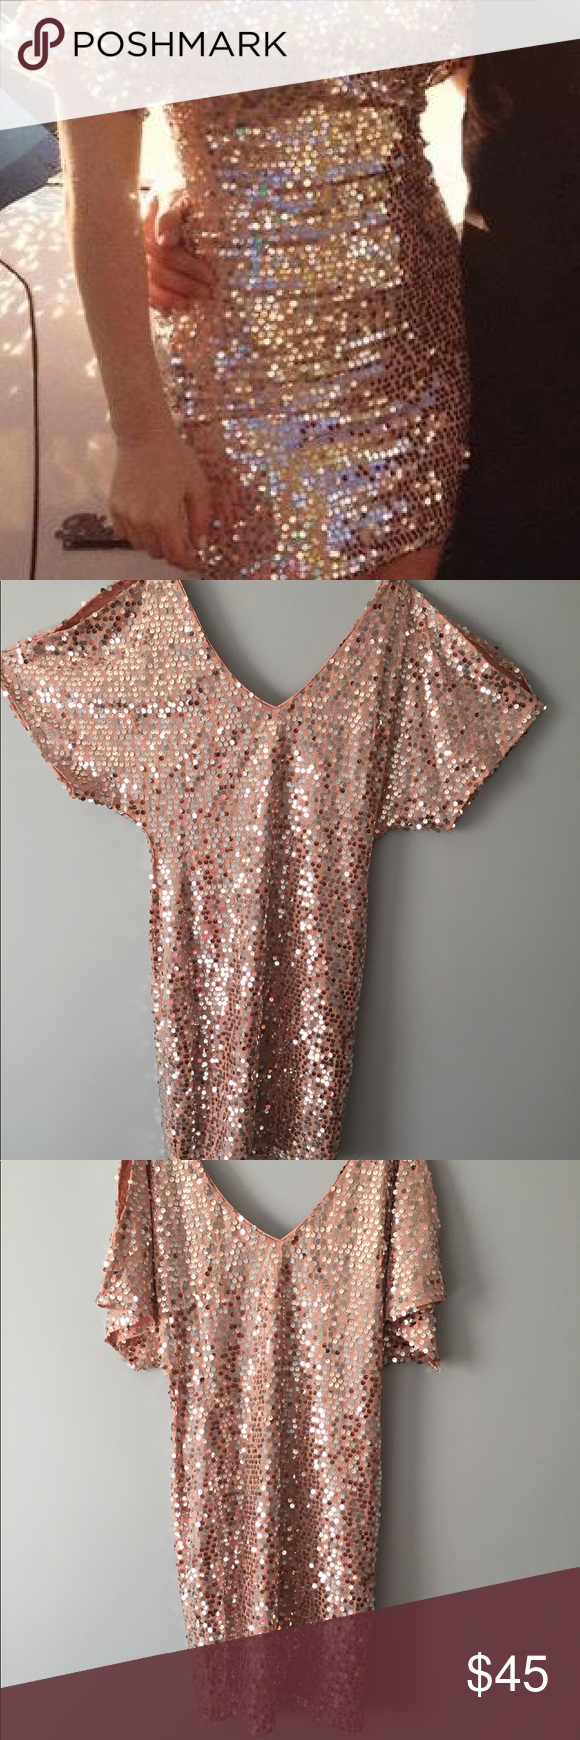 Sequined dress rose gold colour boutique dresses and shoulder